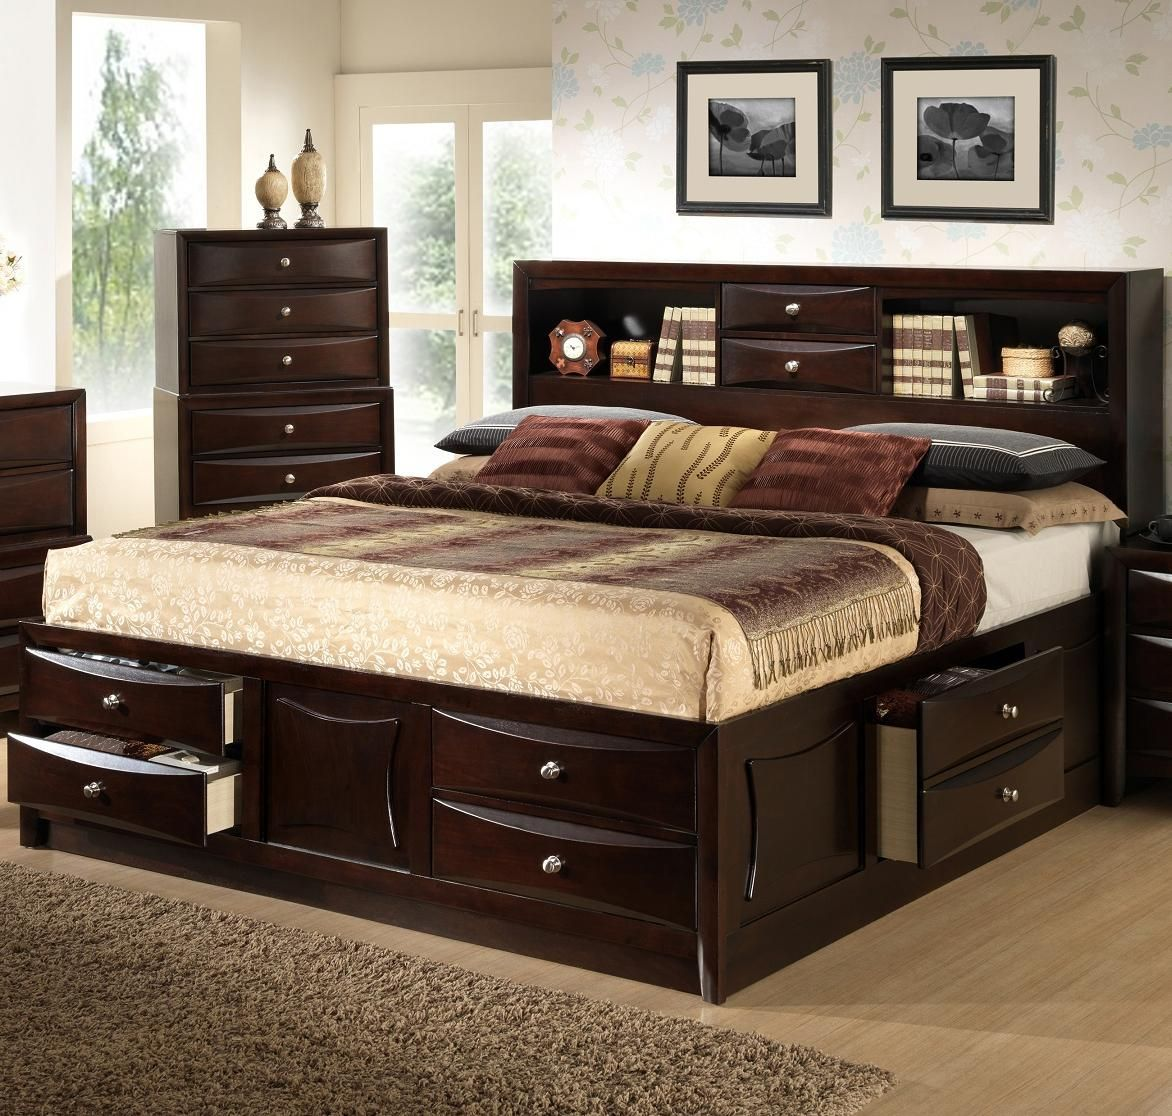 C Queen Storage Bed By Lifestyle